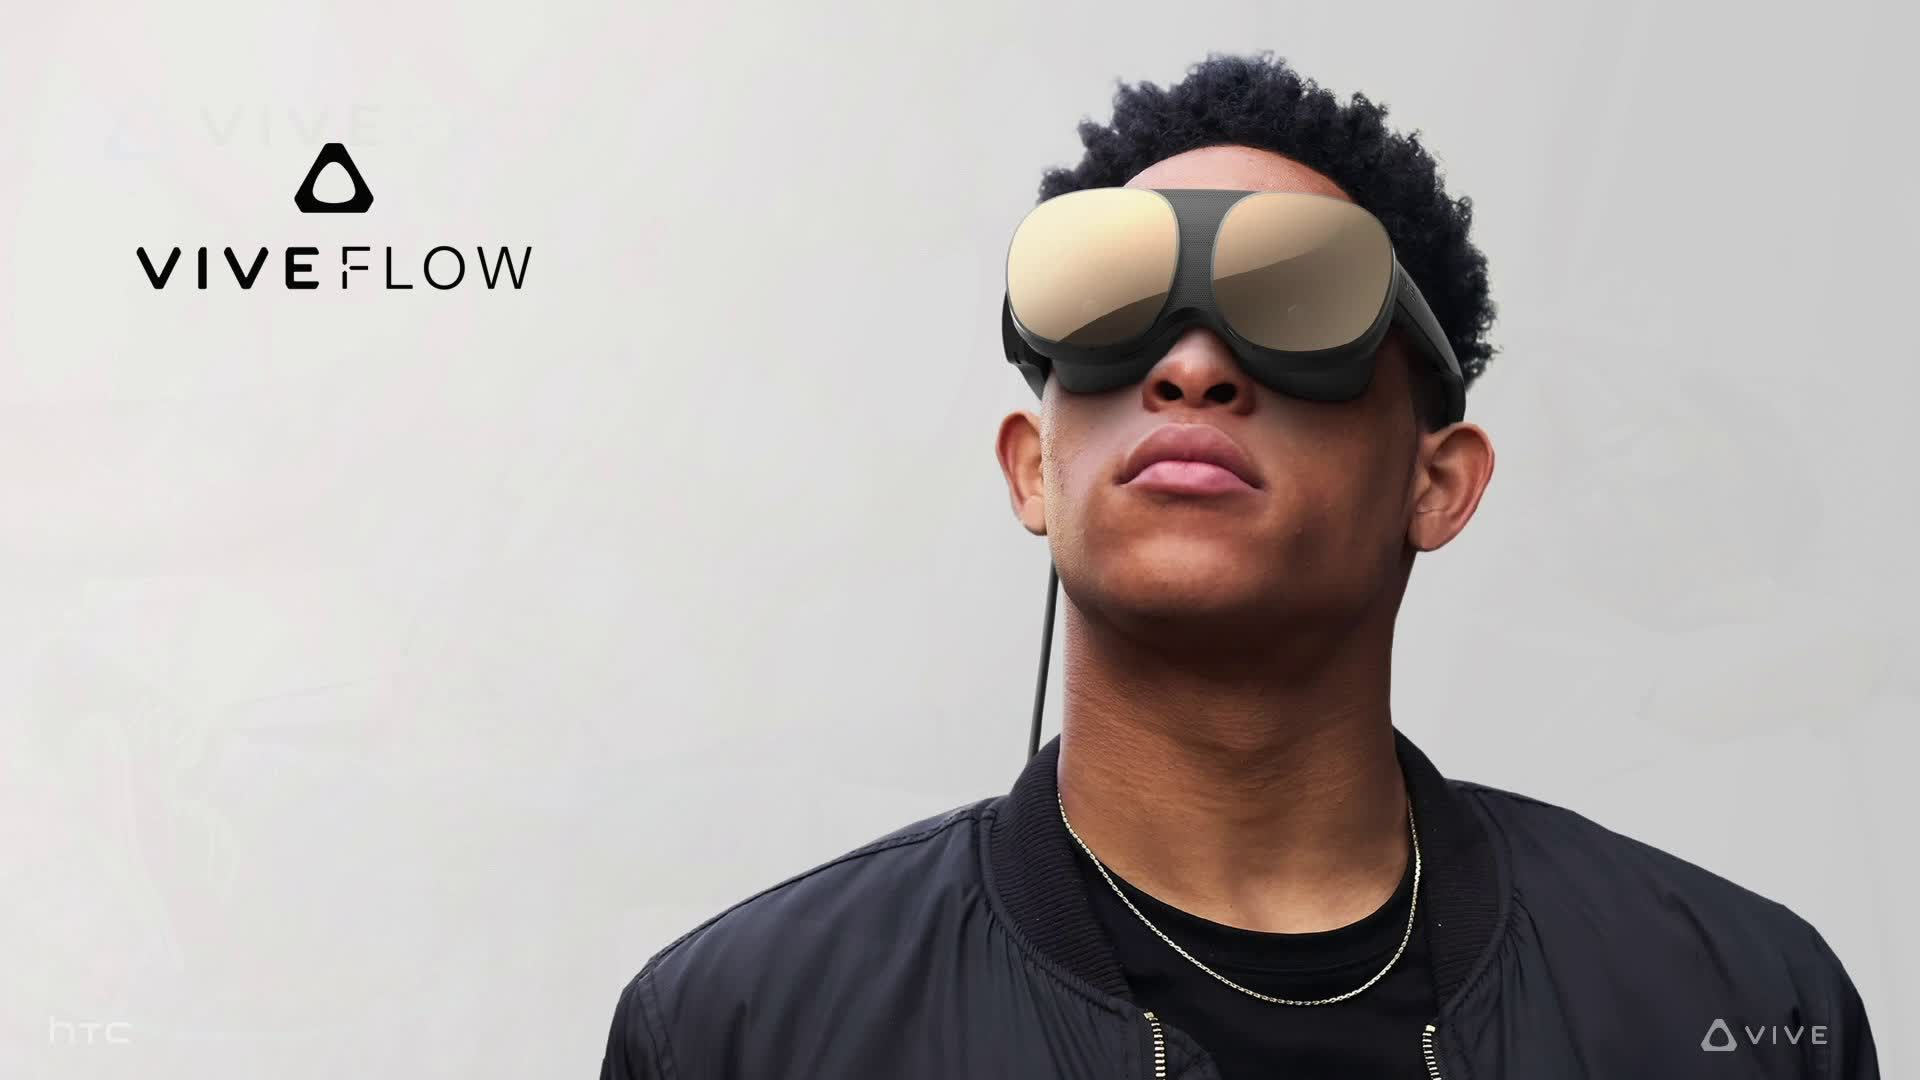 HTC Vive Flow images, info arrive ahead of this week's reveal